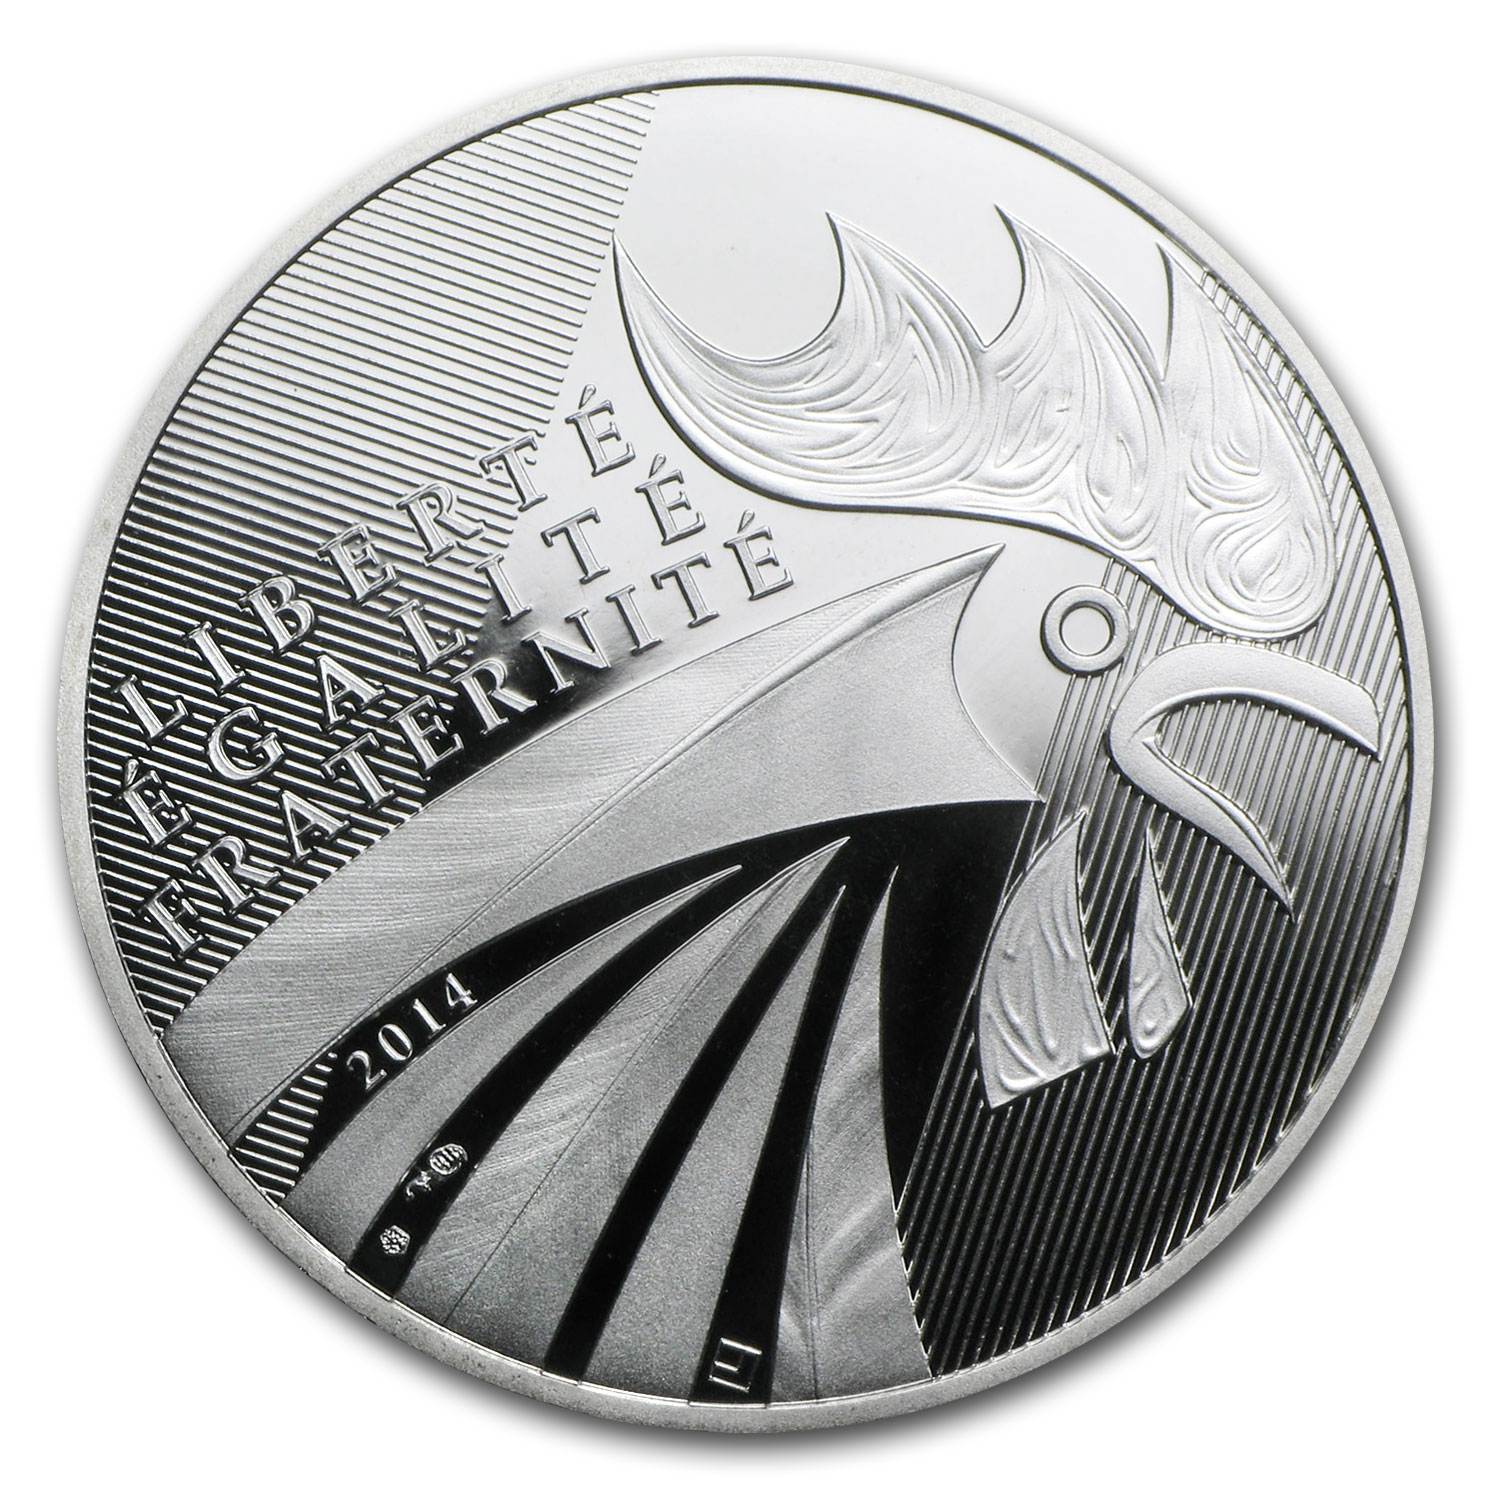 2014 10 Euro Silver Proof - The Rooster